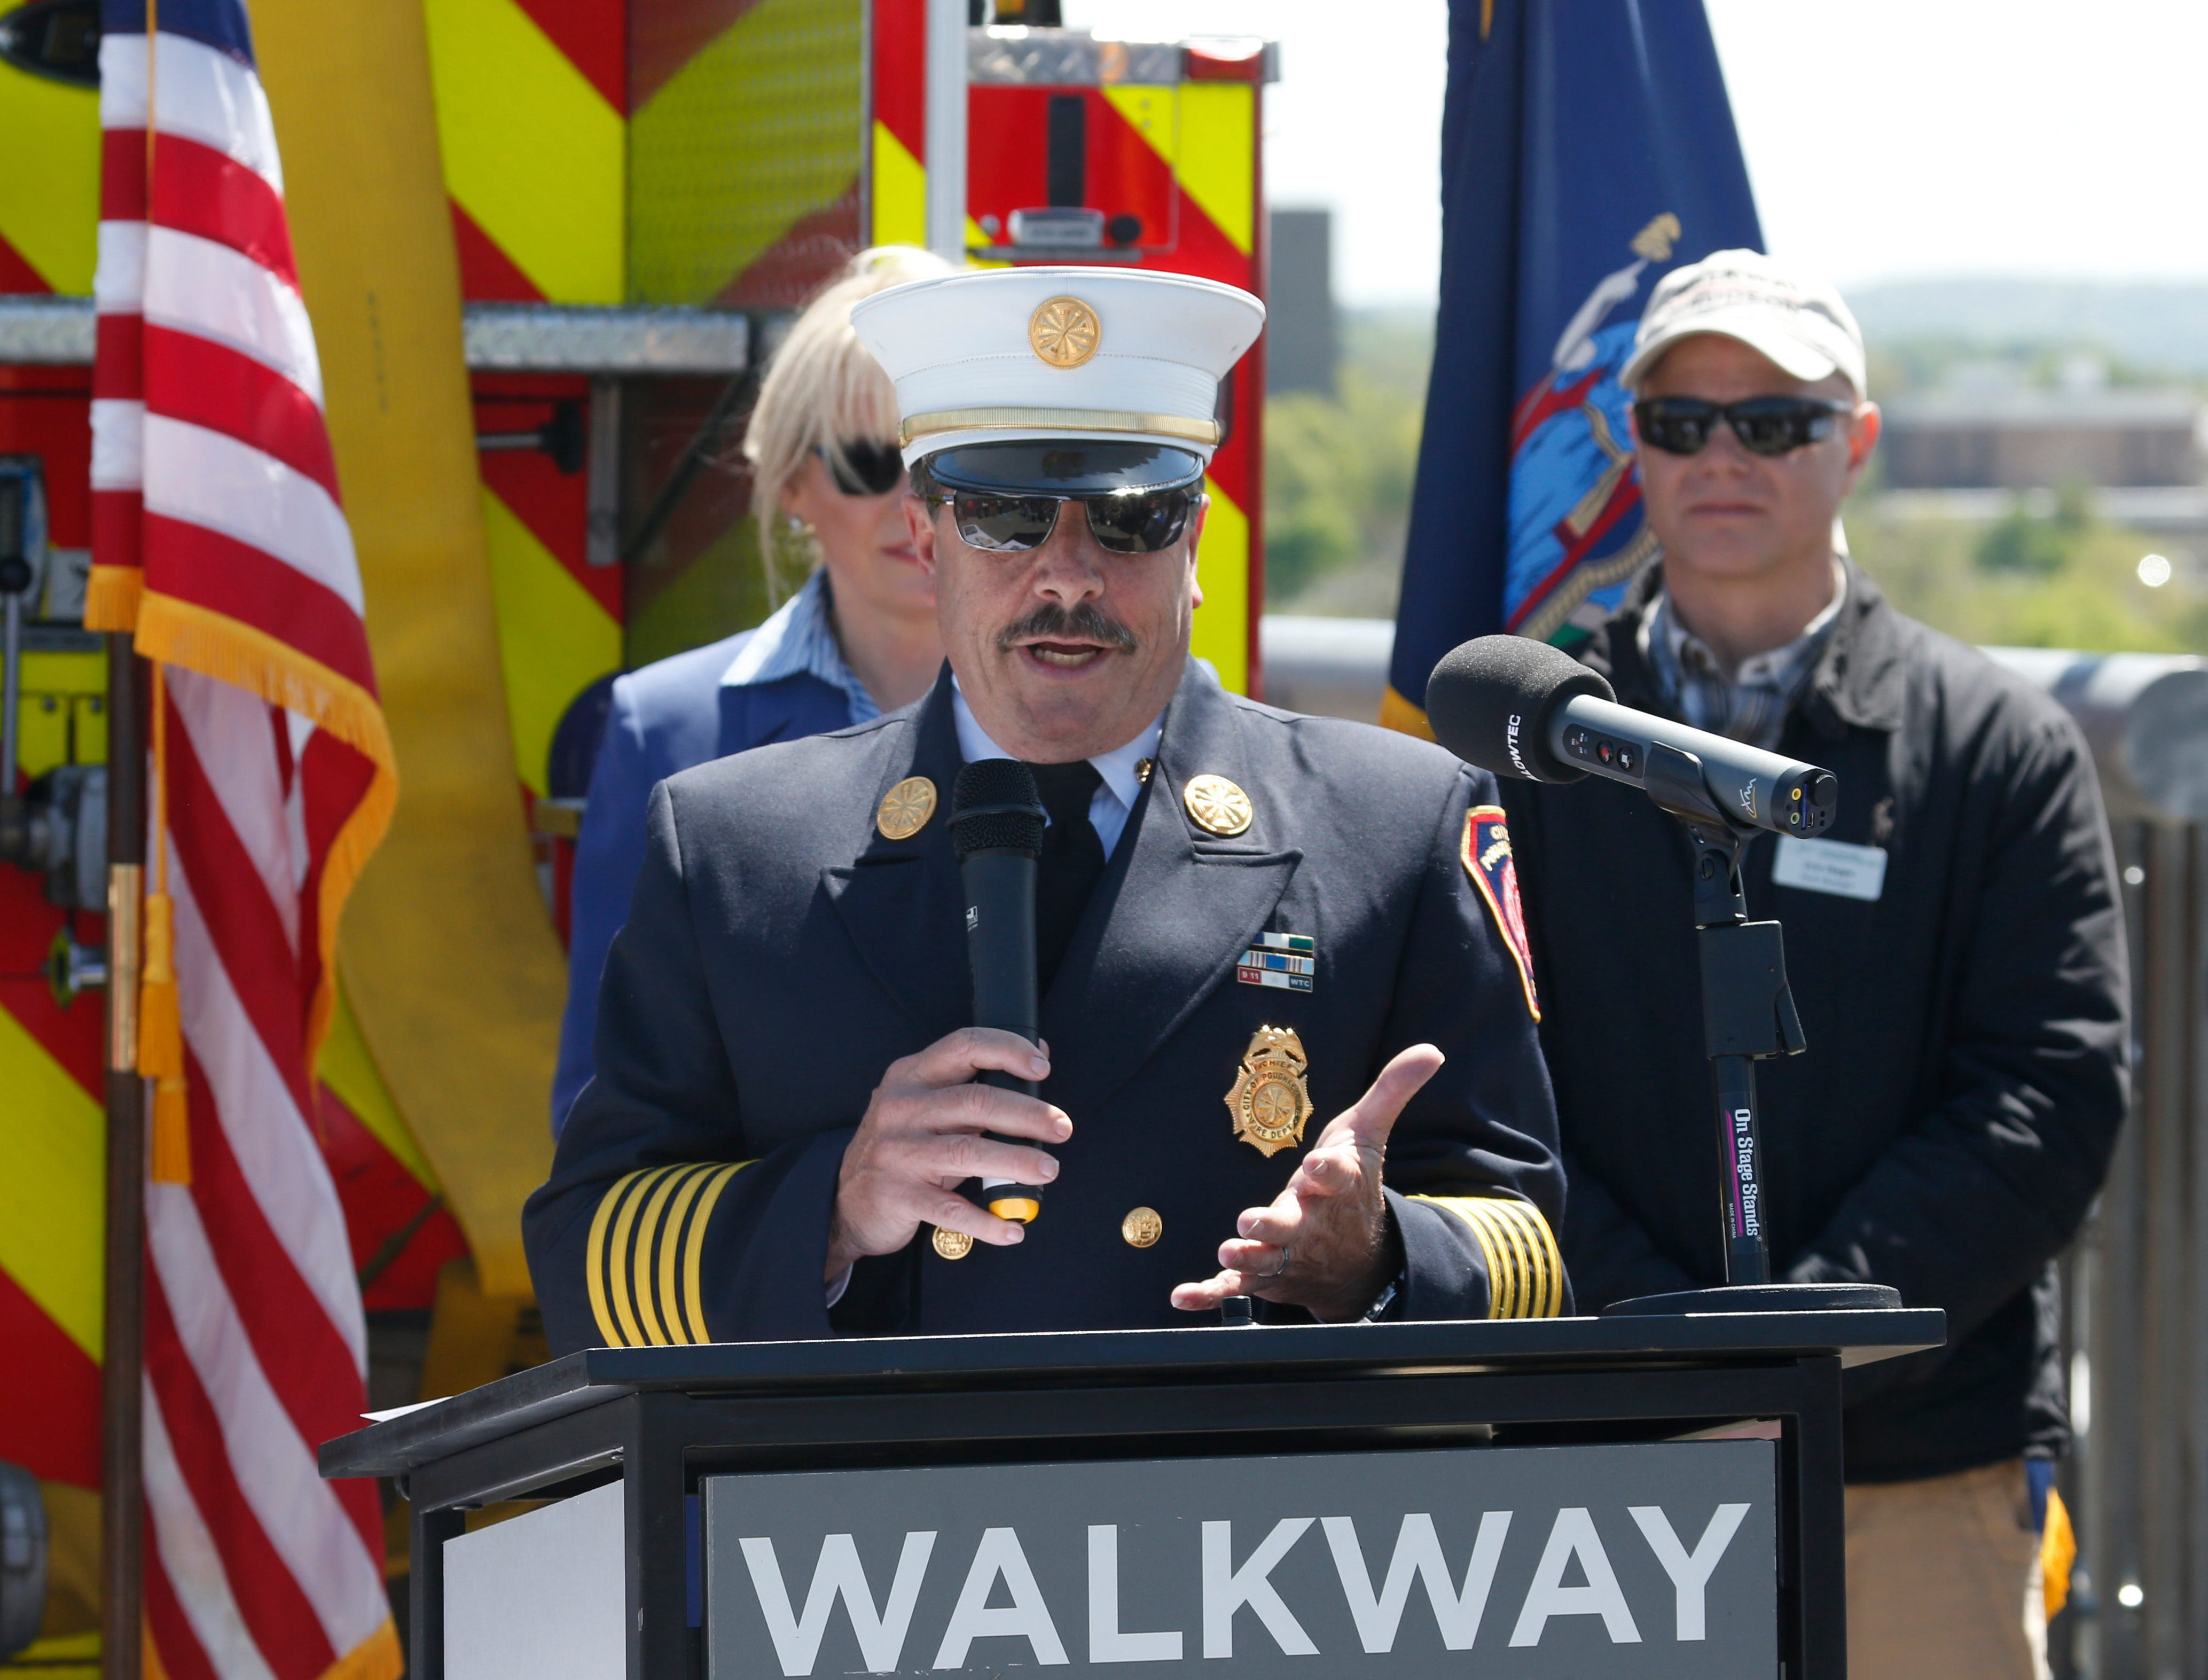 City of Poughkeepsie fire chief Mark Johnson speaks during Wednesday's commemoration of 45th anniversary of the fire that engulfed the railroad bridge on May 8, 2019.